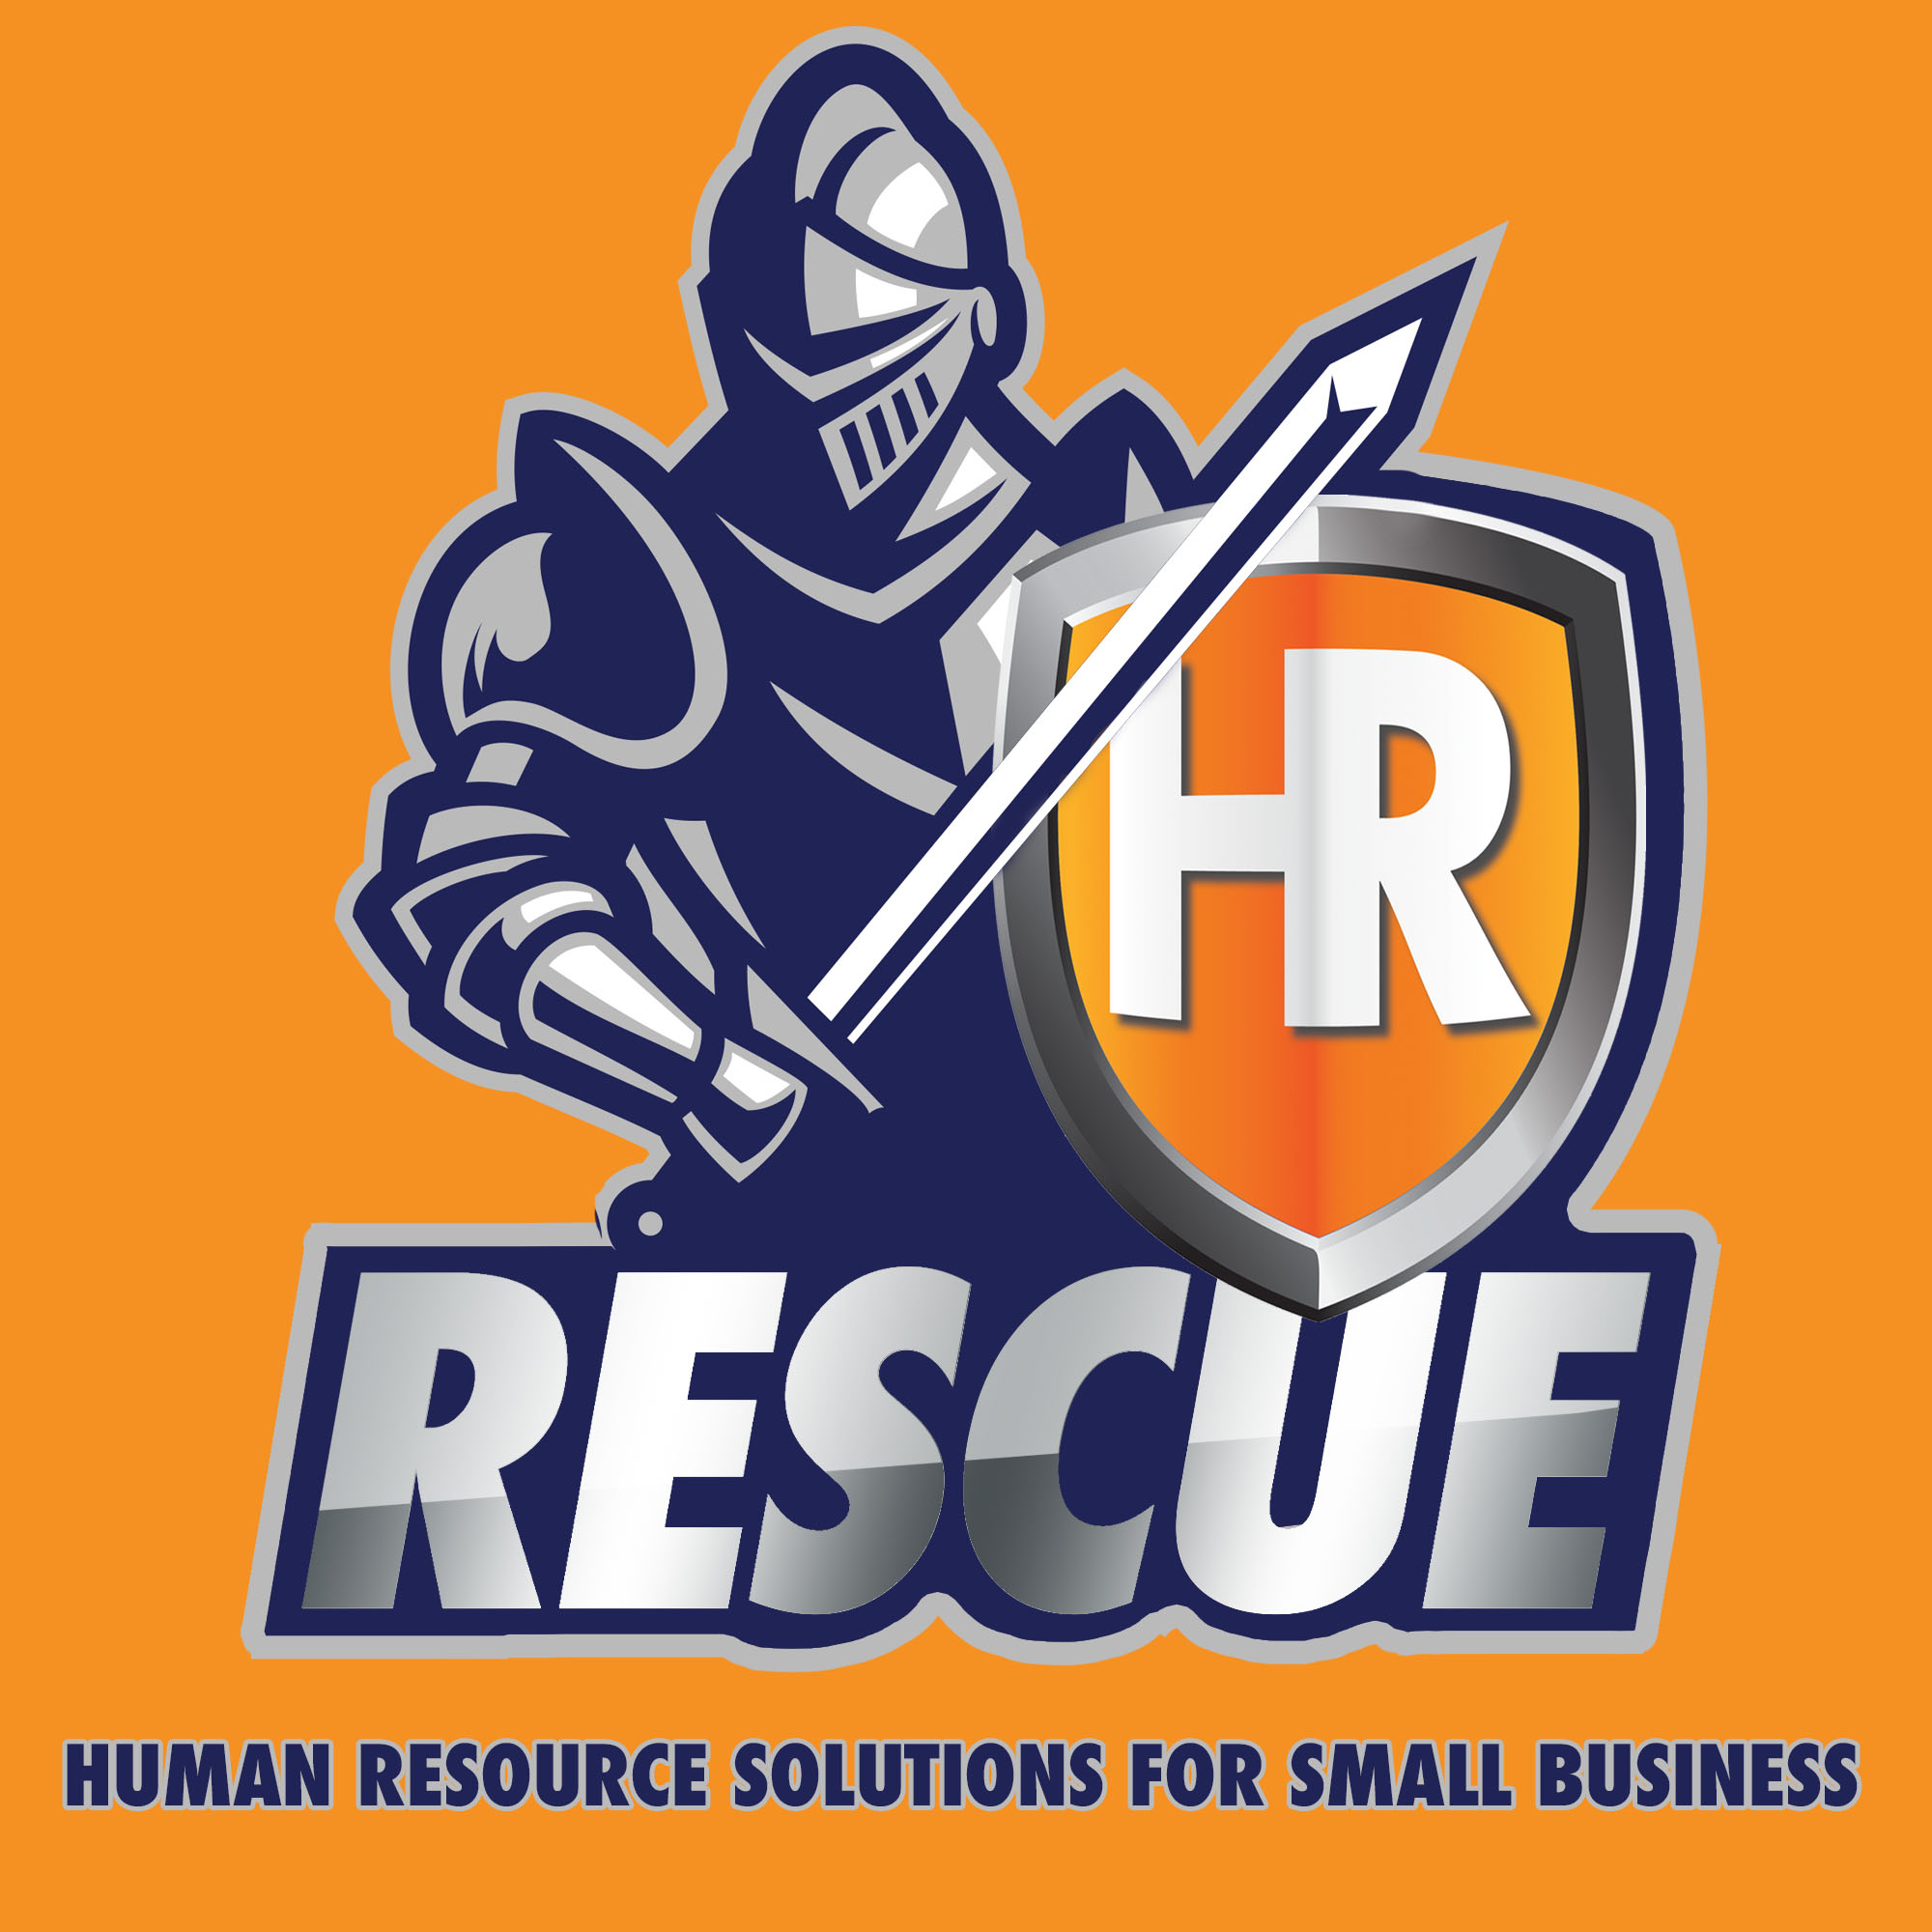 Artwork for podcast HR Rescue: Human Resource Solutions for Small Business